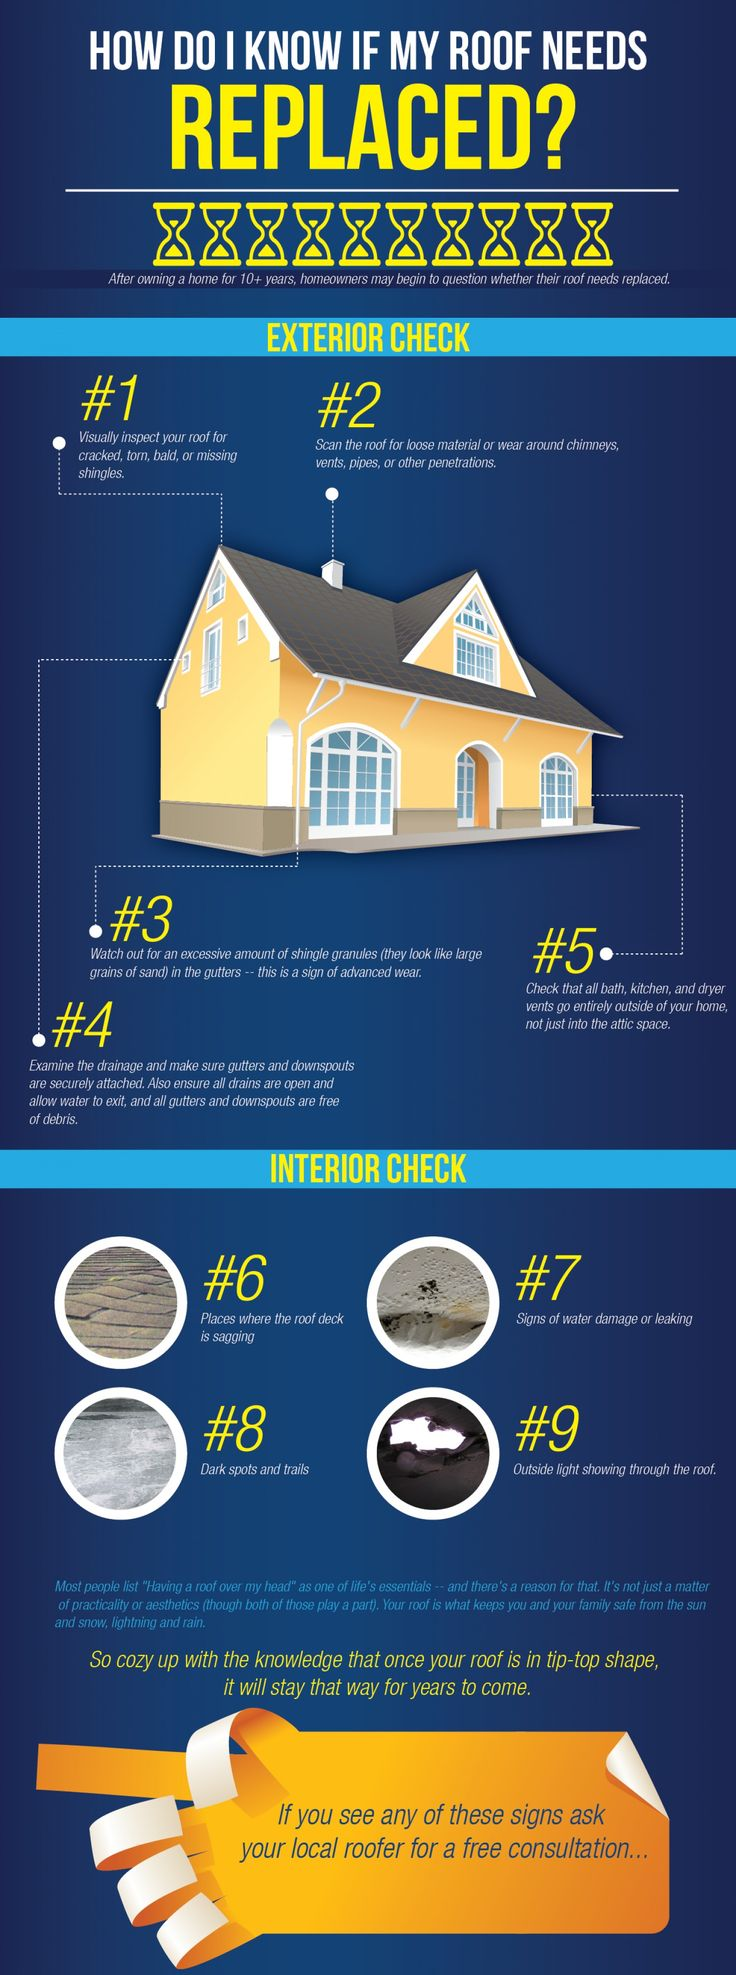 10 Best Water Damage Tips Images On Pinterest Re Conduit Question For Outdoor Wiring Stucco Home Las Veg To Check And Replace Your Roofings Infographic Shared By Acspvt14 Aug 12